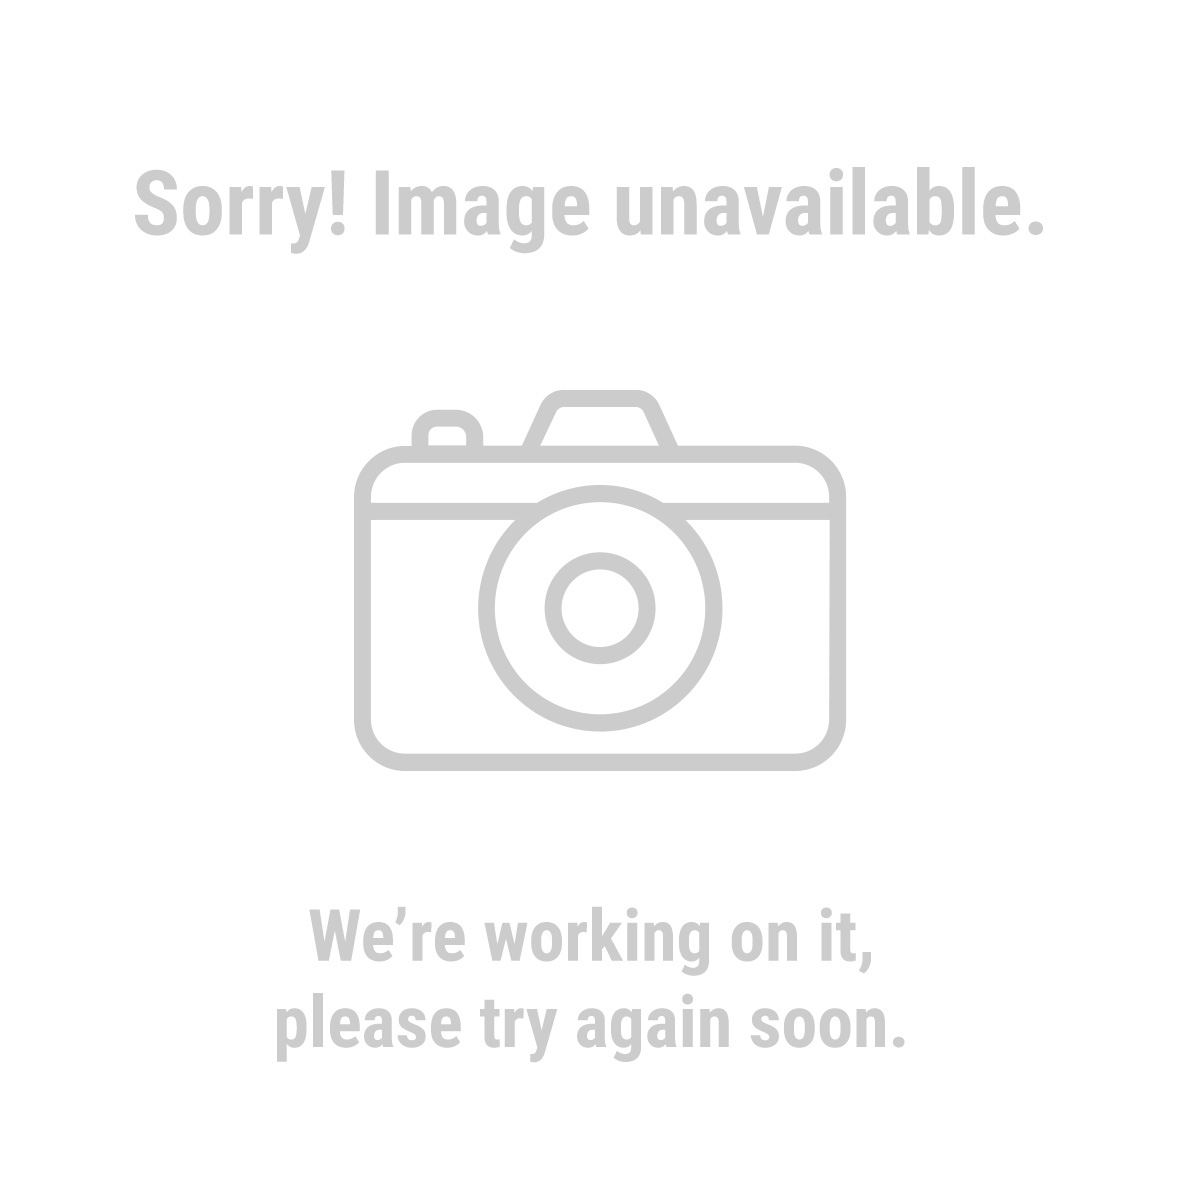 HFT® 69120 11 ft. 4 in. x 19 ft. 6 in. Silver/Heavy Duty Reflective All Purpose/Weather Resistant Tarp